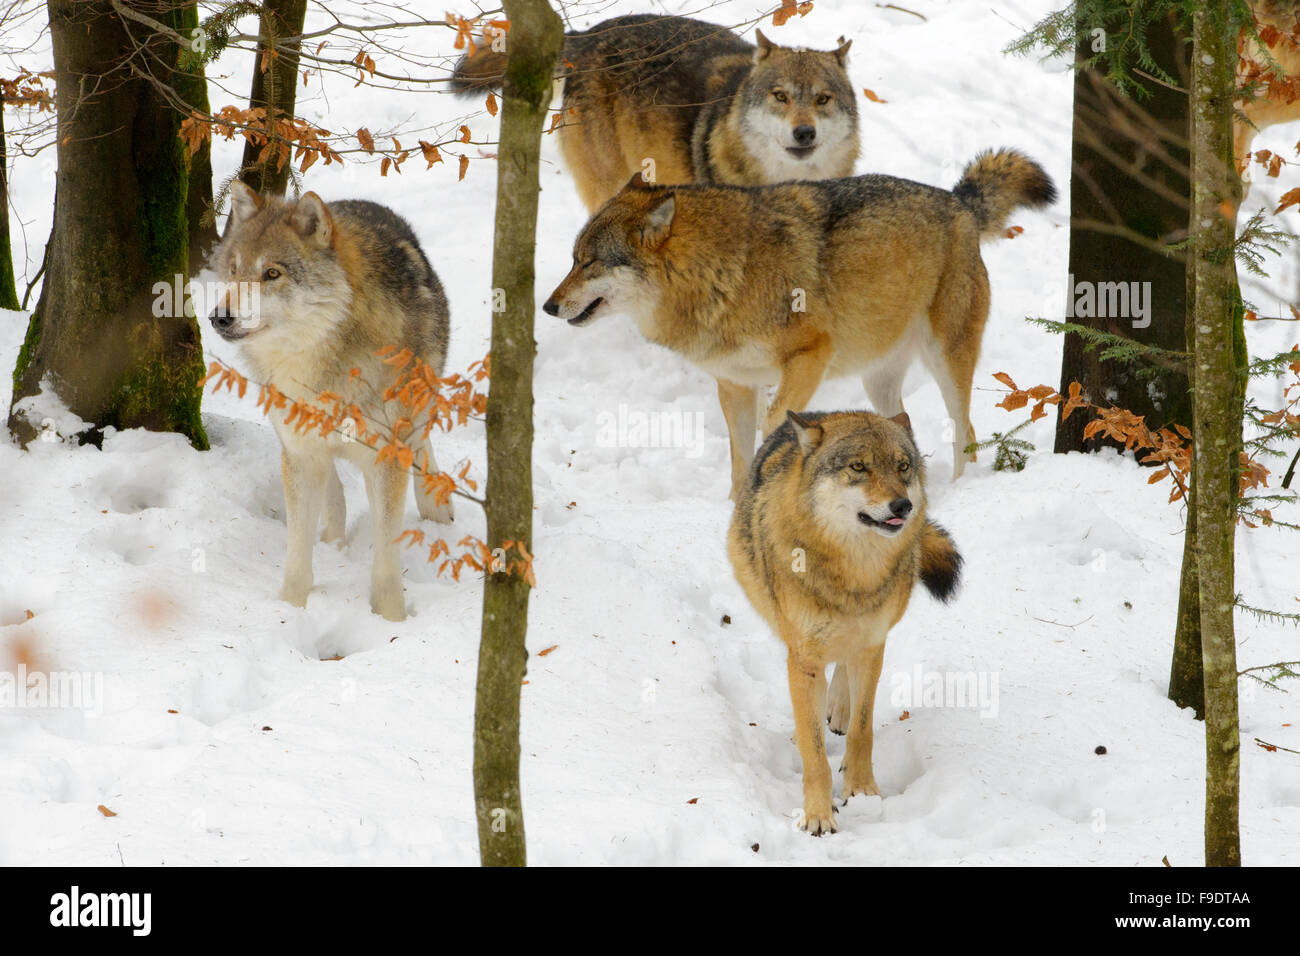 European wolf (Canis lupus lupus) pack, playing and communicating in the forest with snow, Bavarian forest, Germany - Stock Image